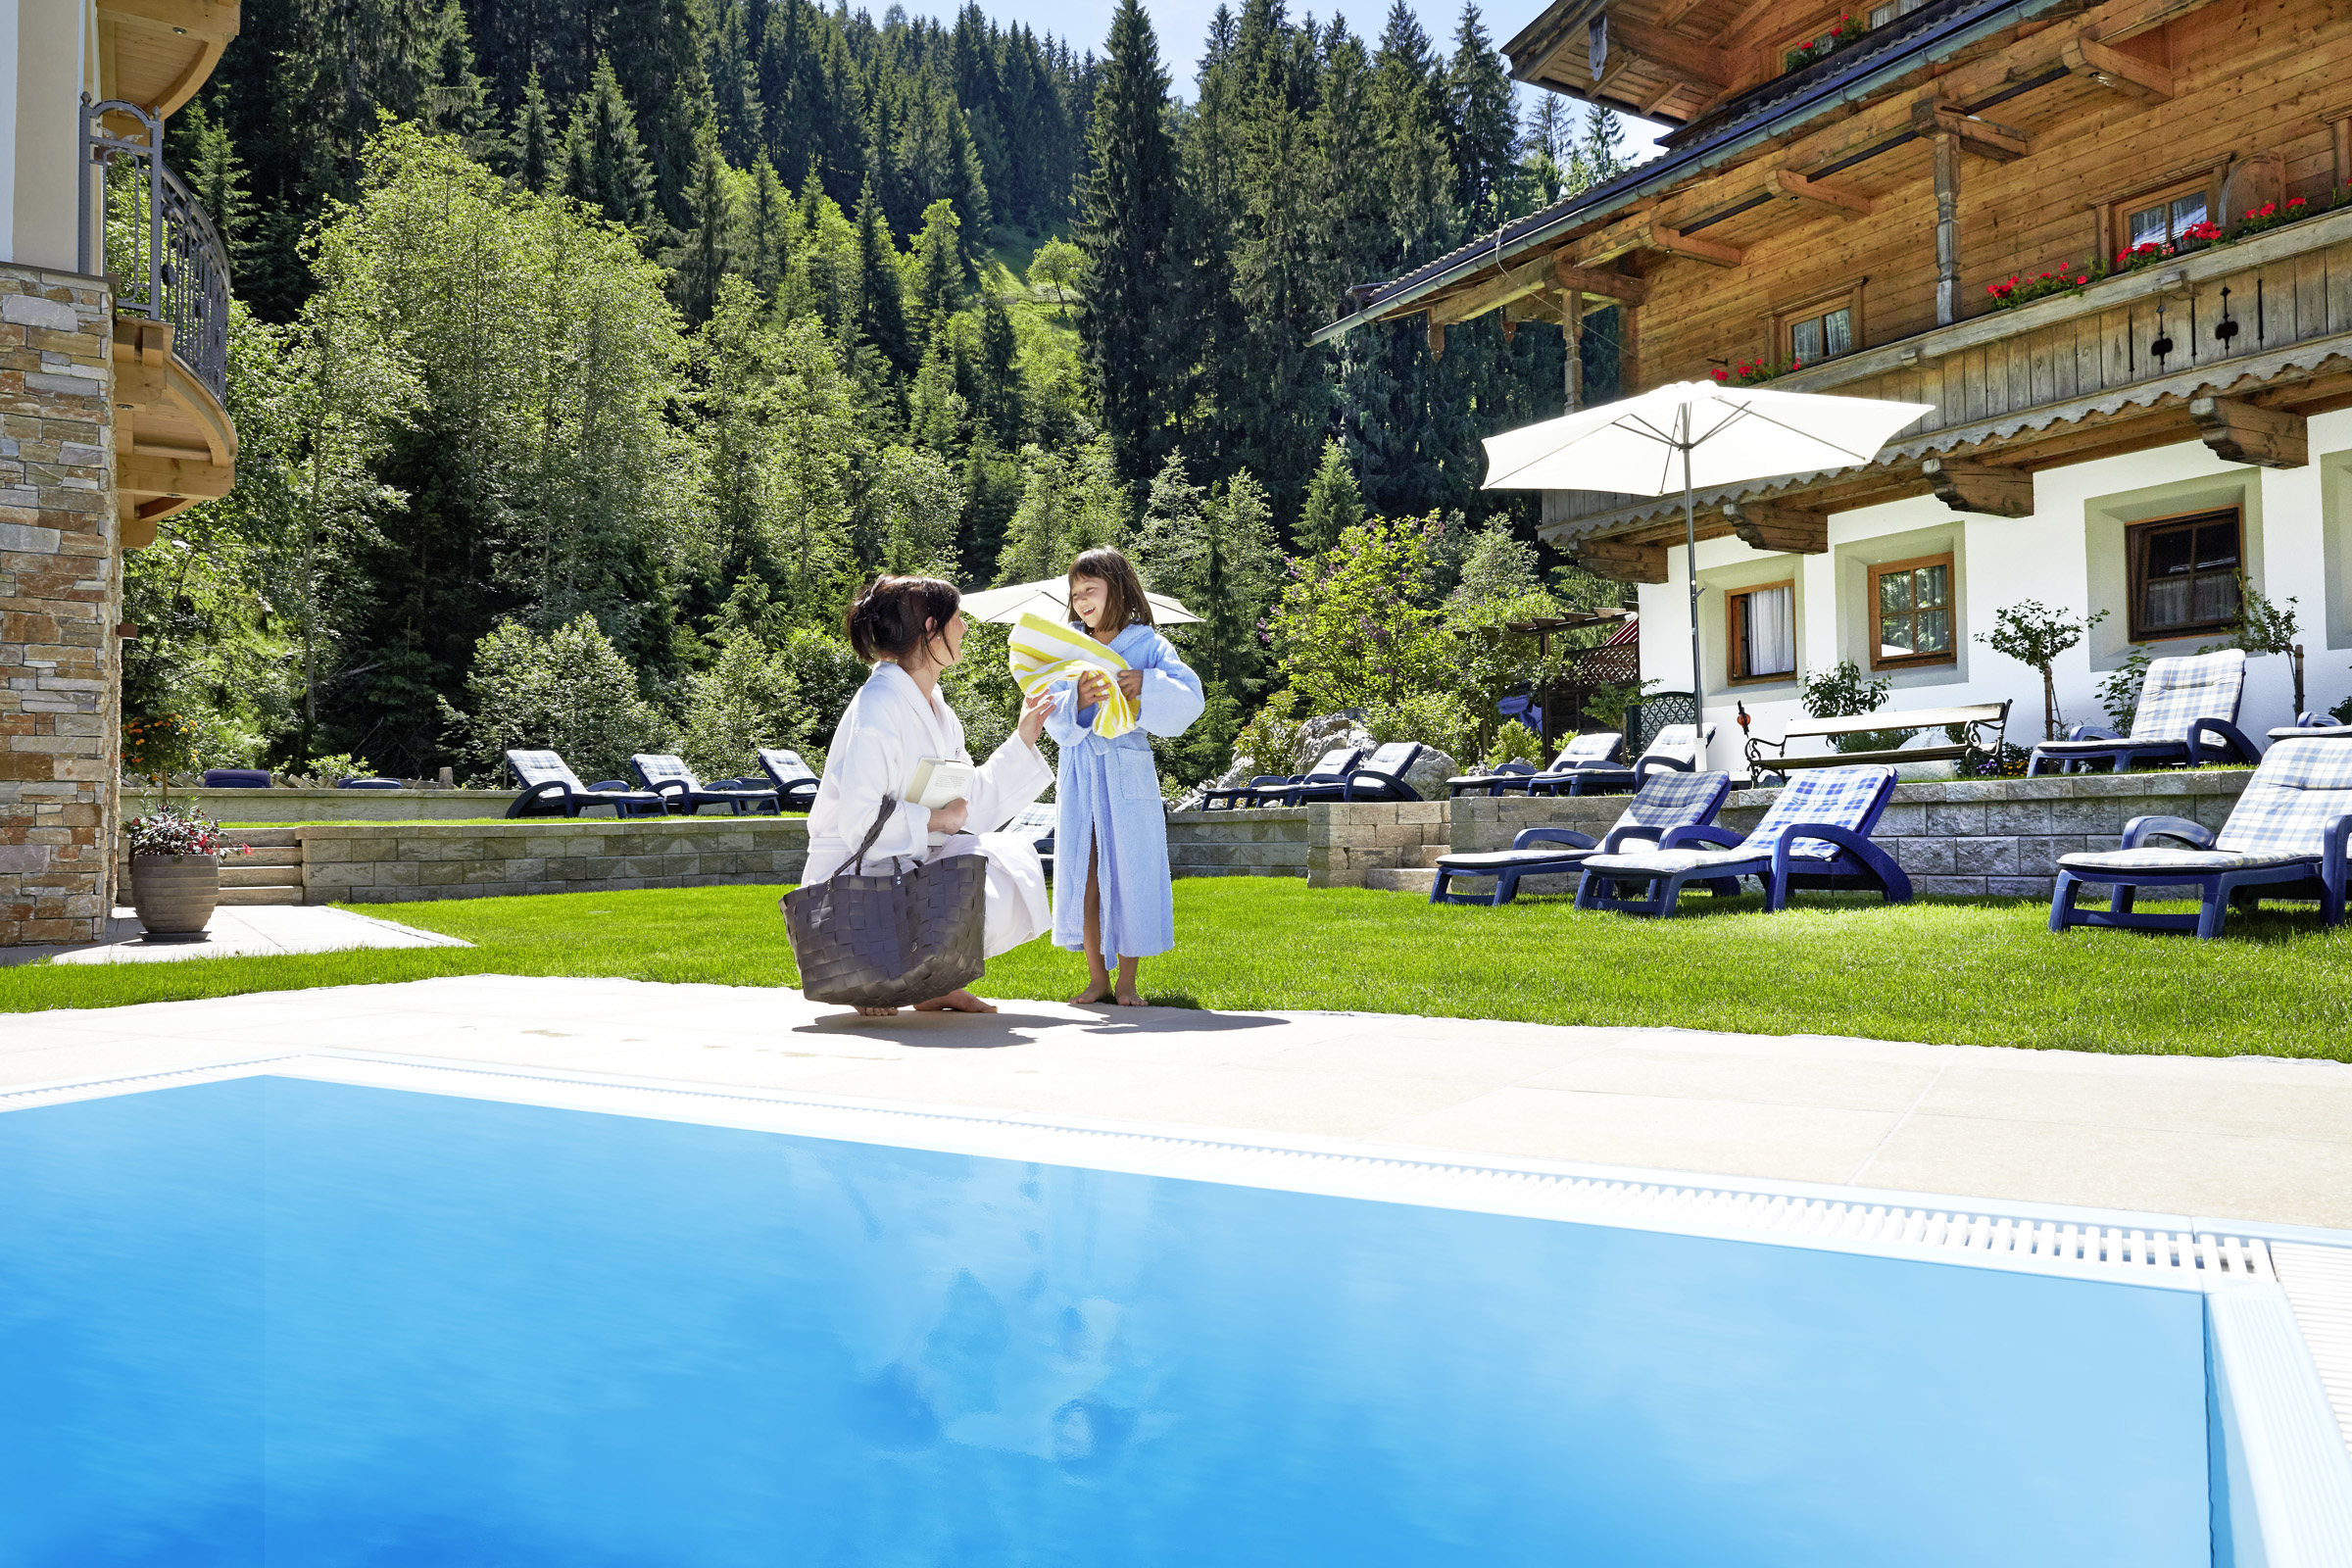 Pool Garten Winter Outdoor Pool With Spa Garden And Sunbathing Area Habachklause